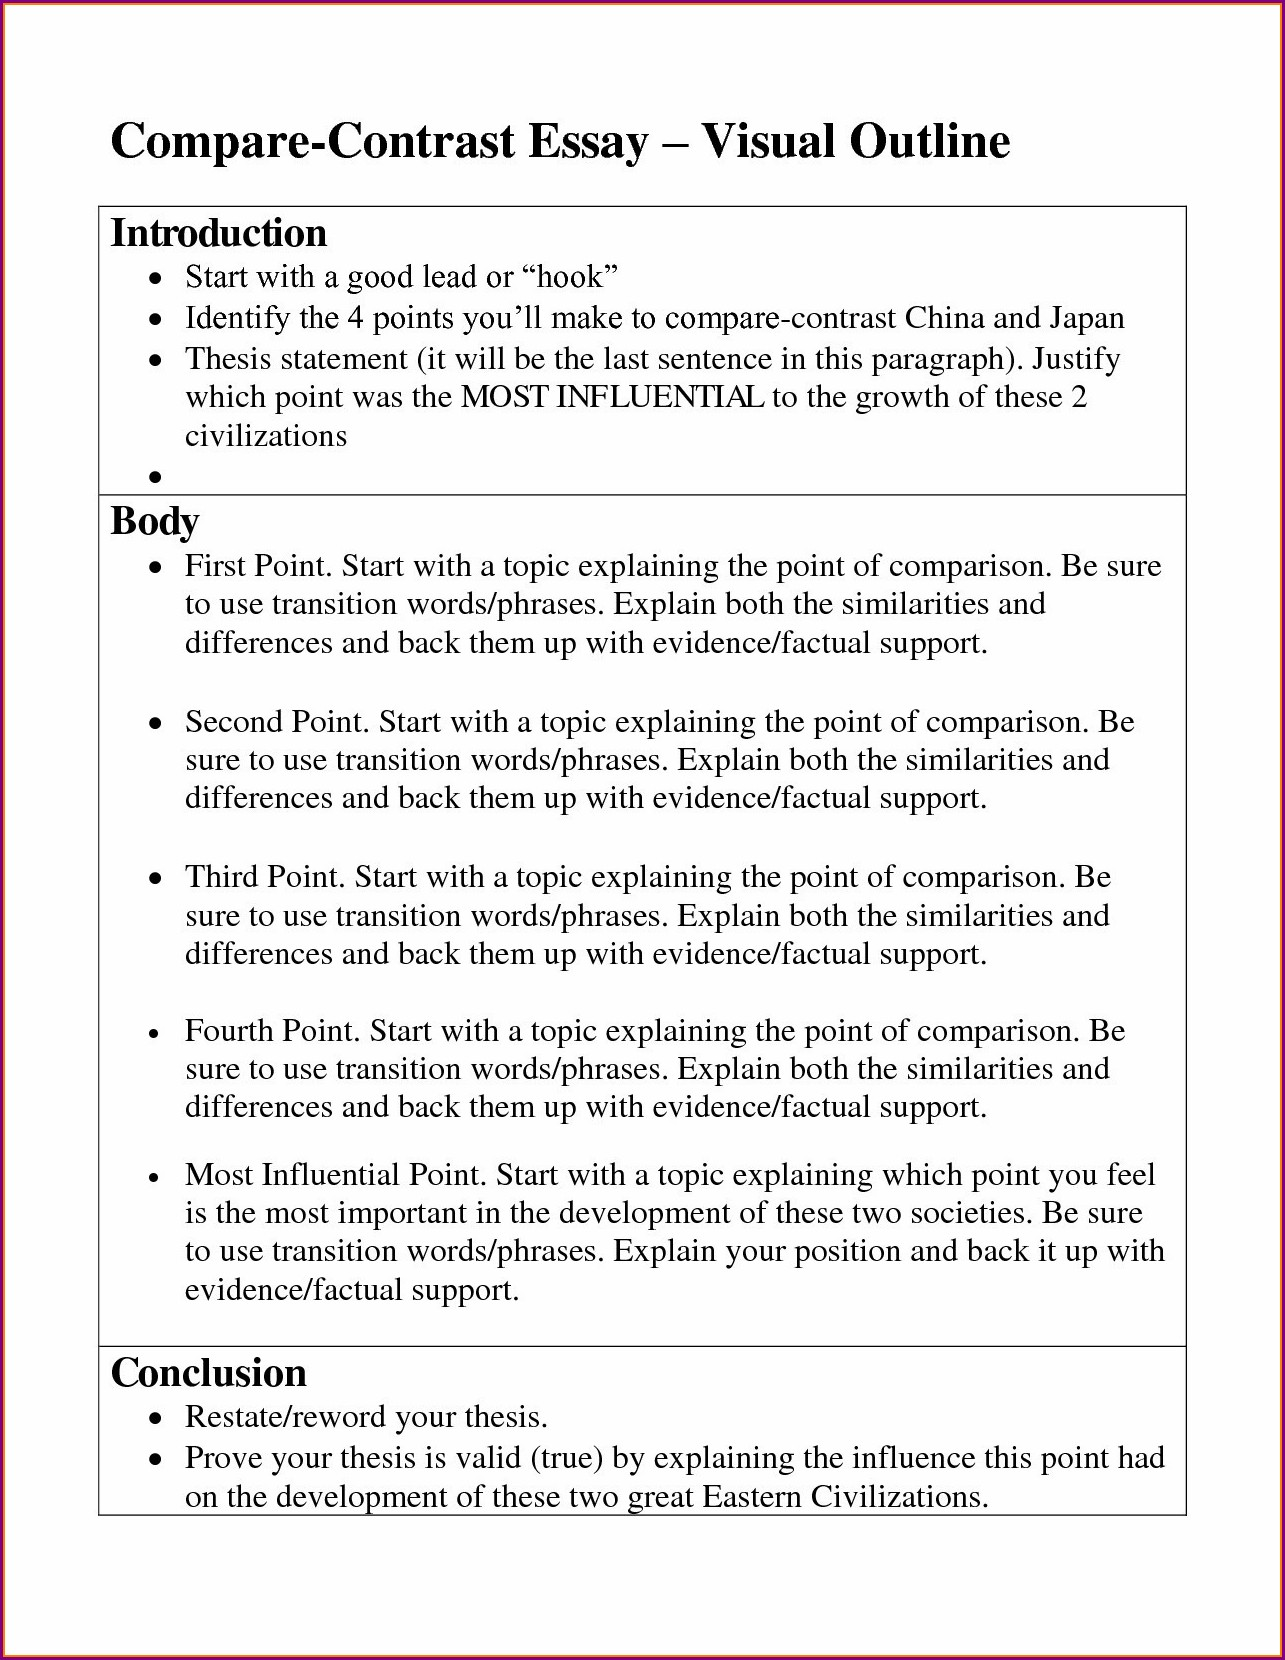 9th Grade Transition Words Worksheet With Answers